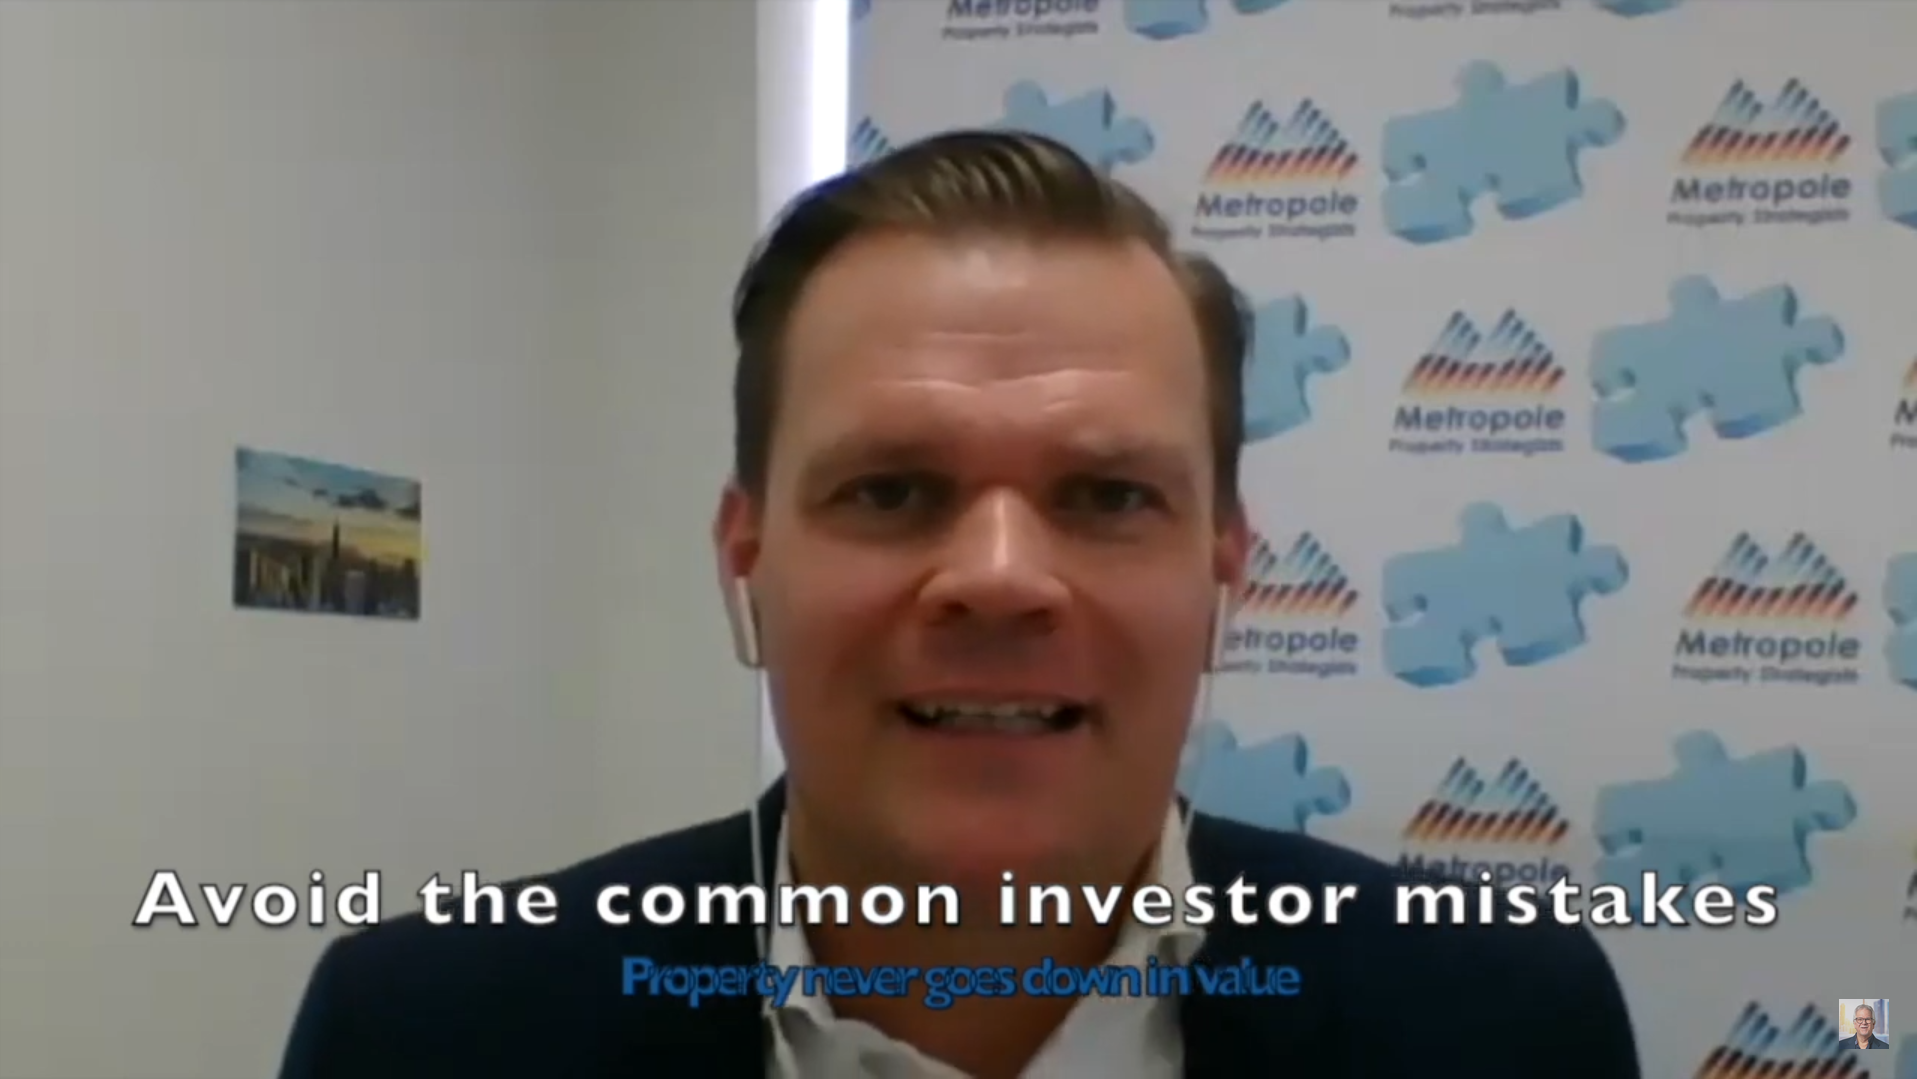 Property never goes down in value | Common Investor Mistakes